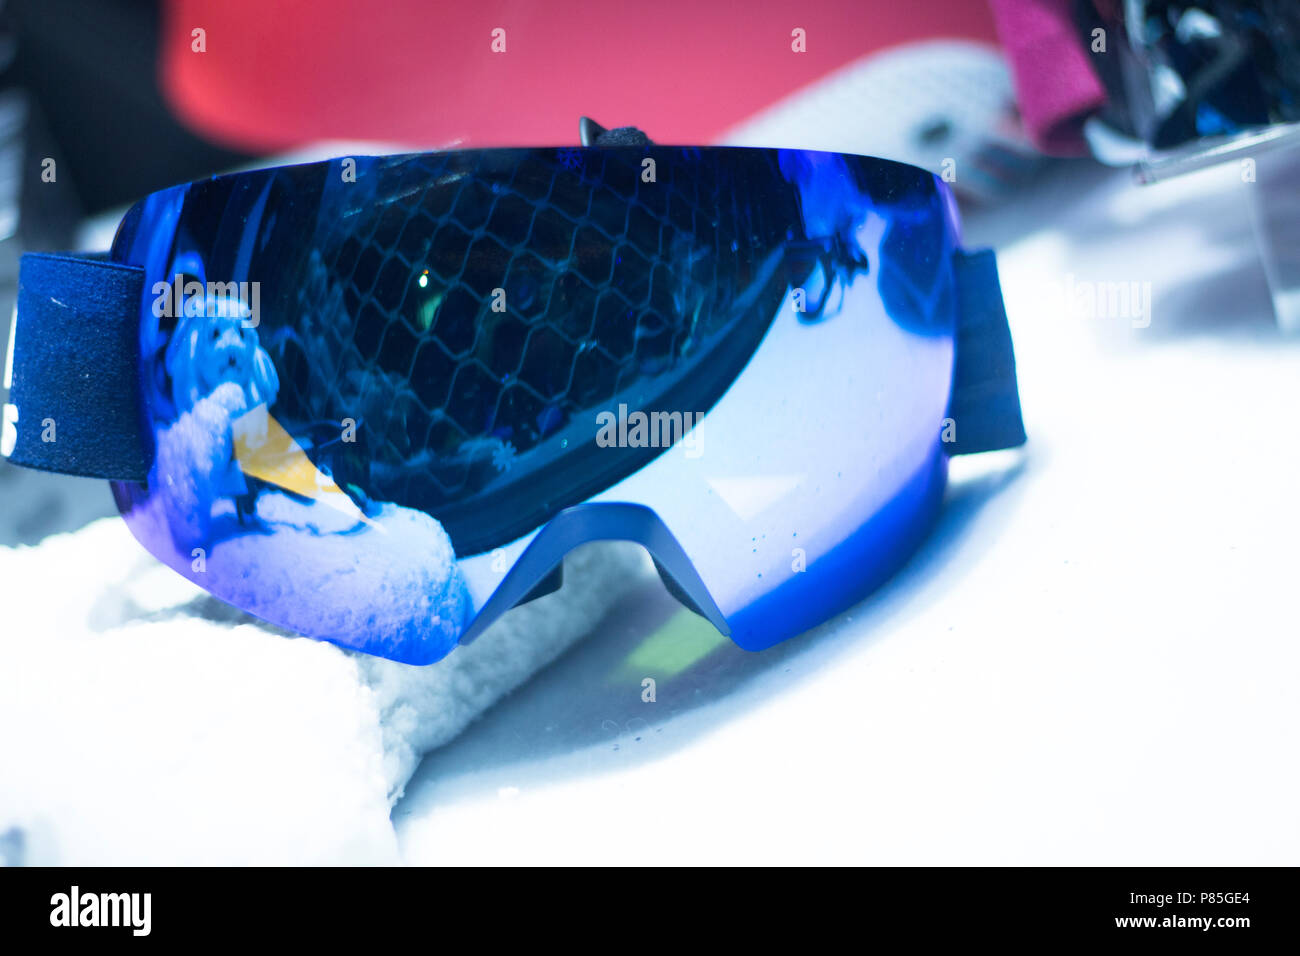 6a2907ea55 Modern high technology anti reflection ski and snowboard shop goggles on  sale in store window display